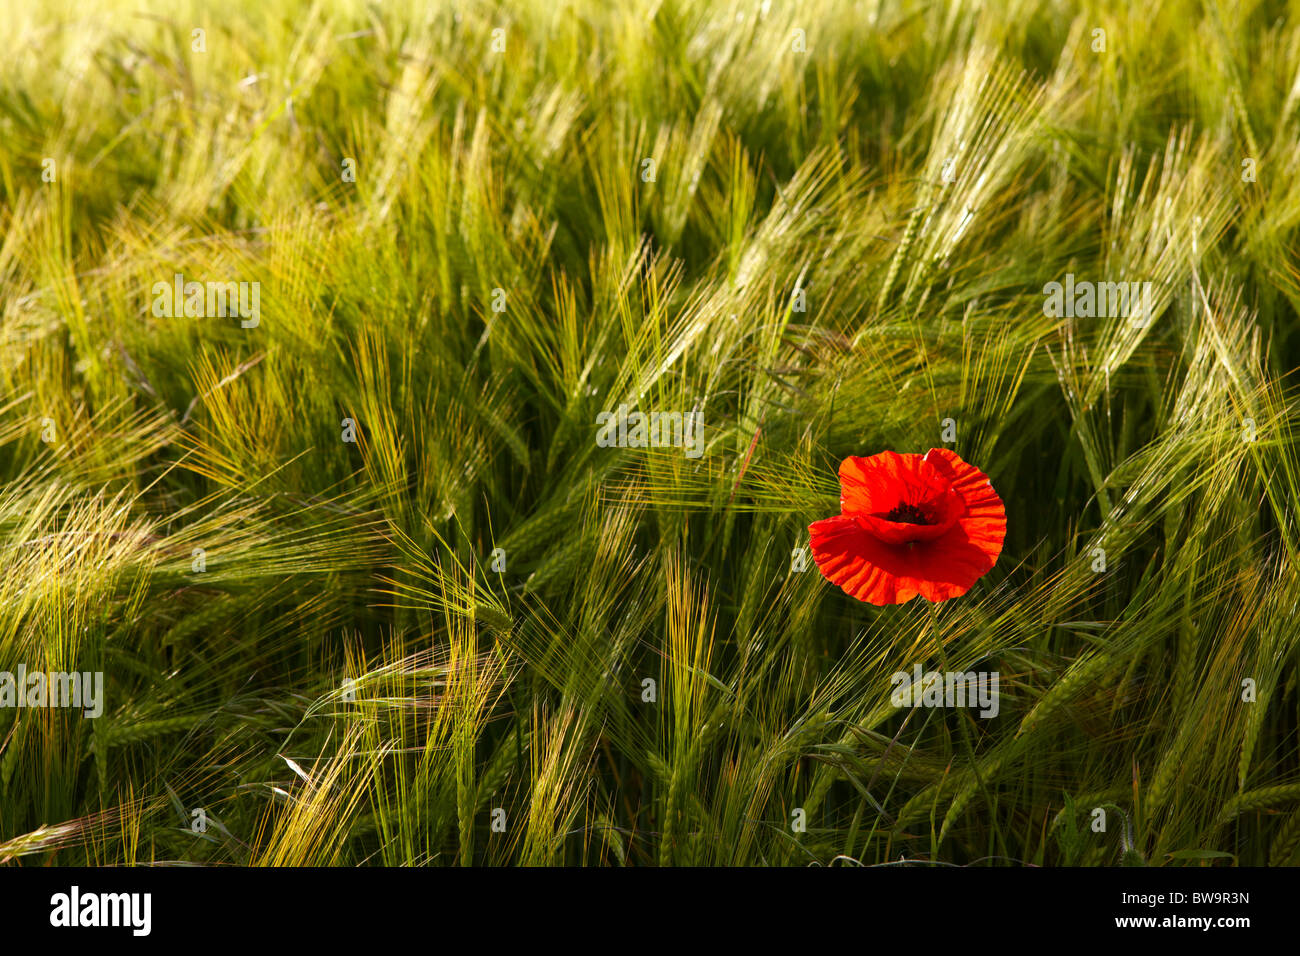 Single poppy in a barley field - Stock Image